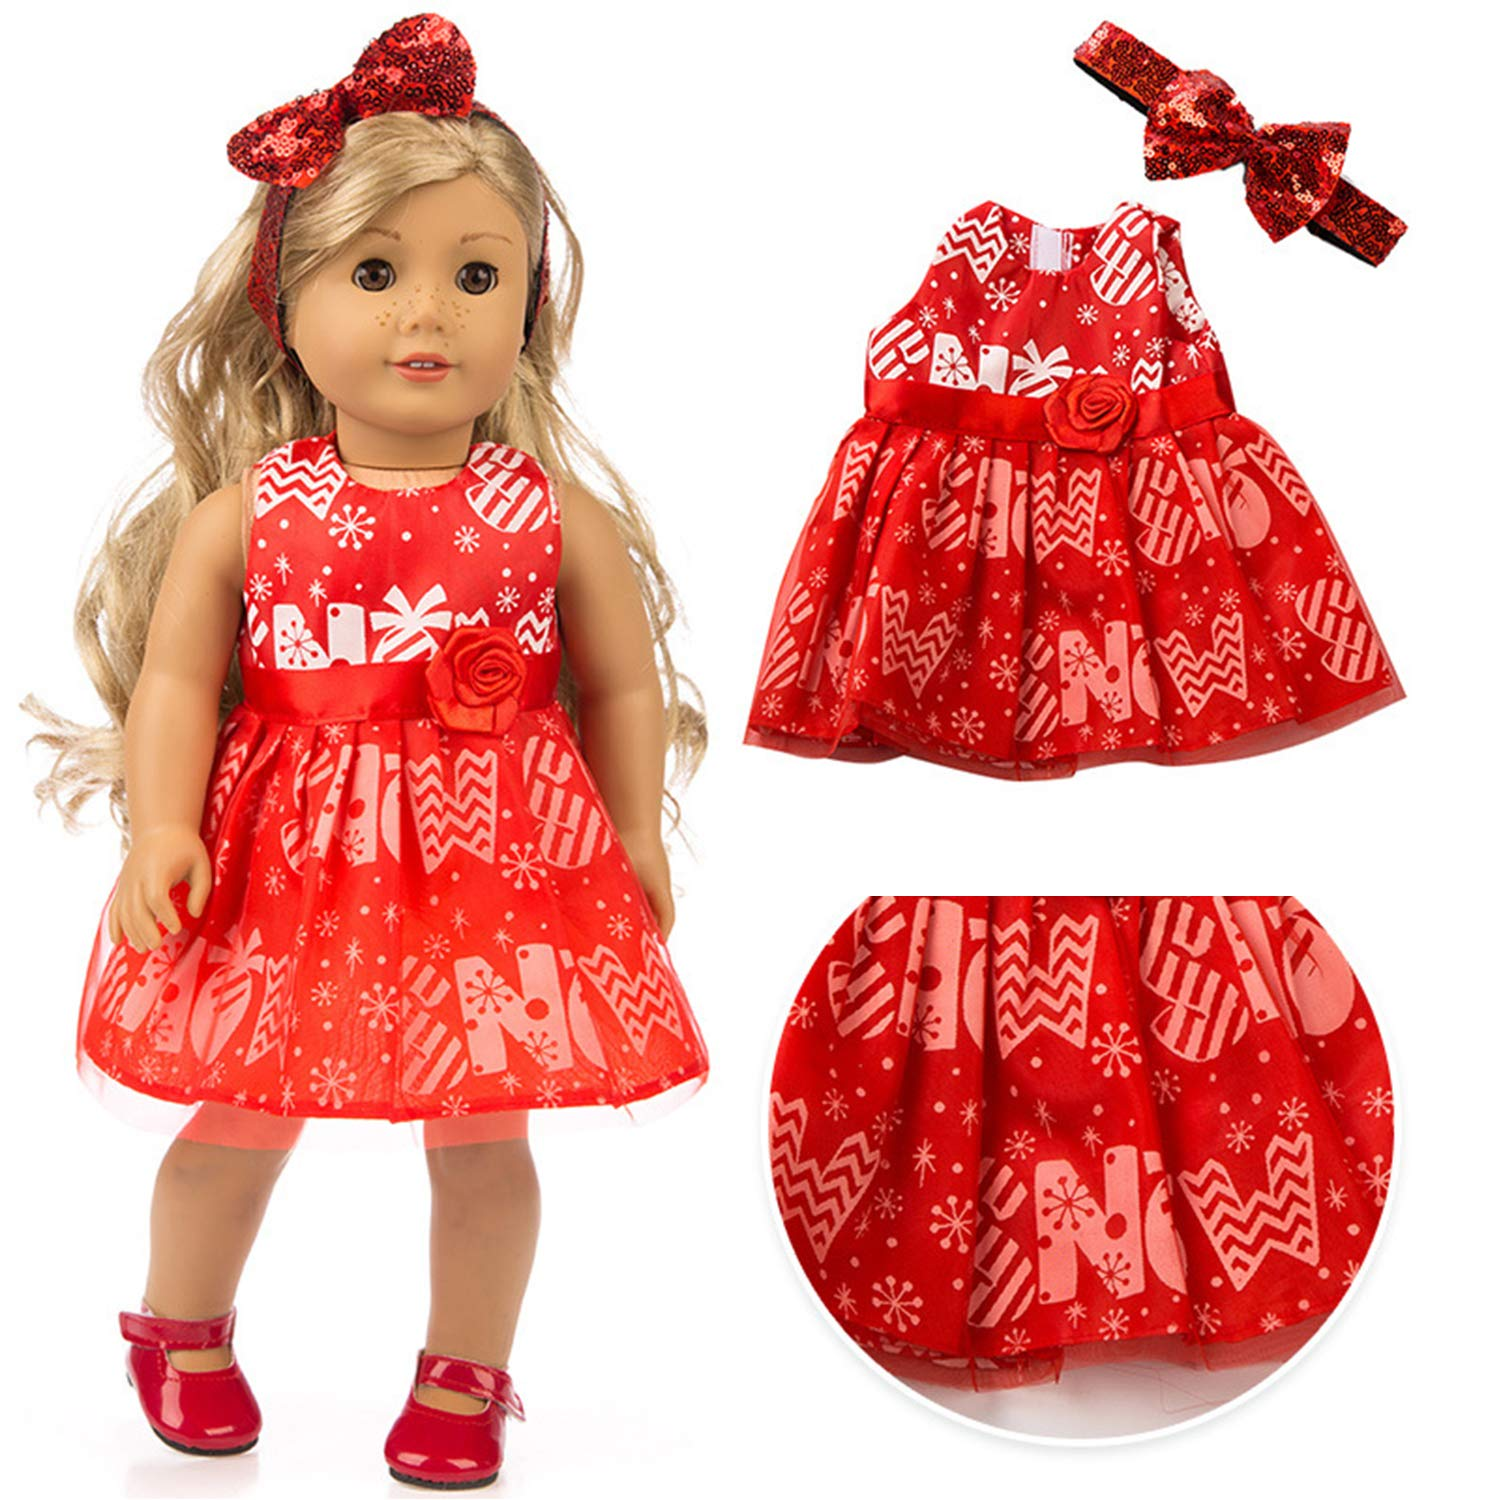 UEECHY 18 Inch Doll Clothes and Accessories American Doll Dresses